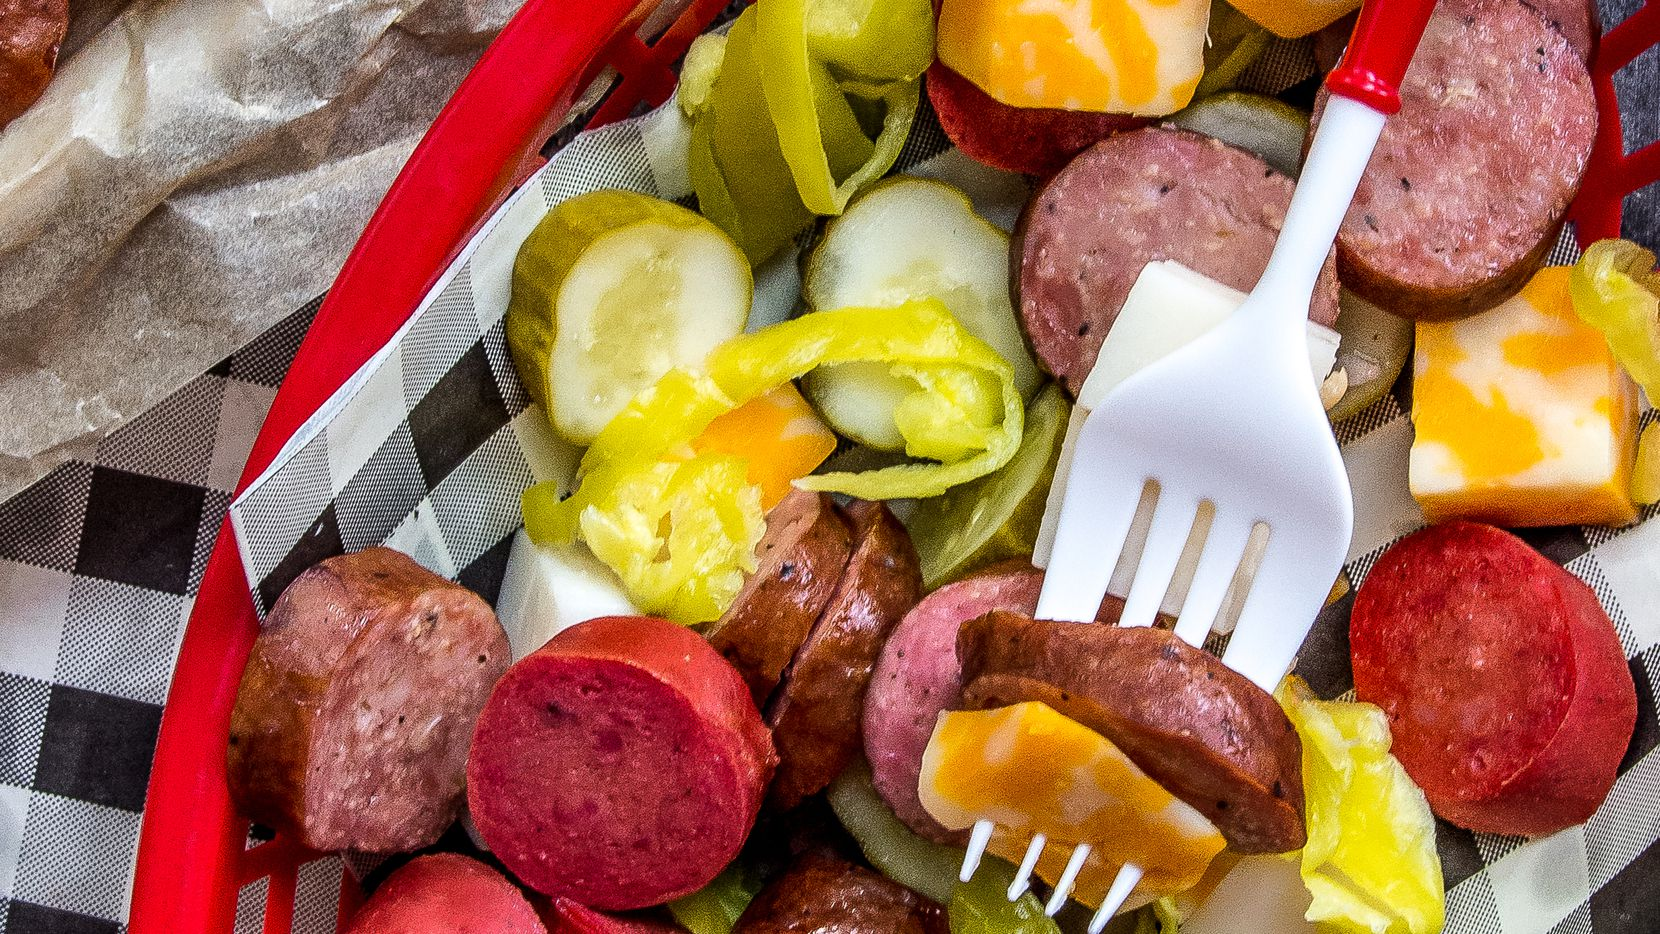 Sausage, Cheese and Pickle Platter is a recreation of a famous dish at Champy s Famous Fried Chicken.